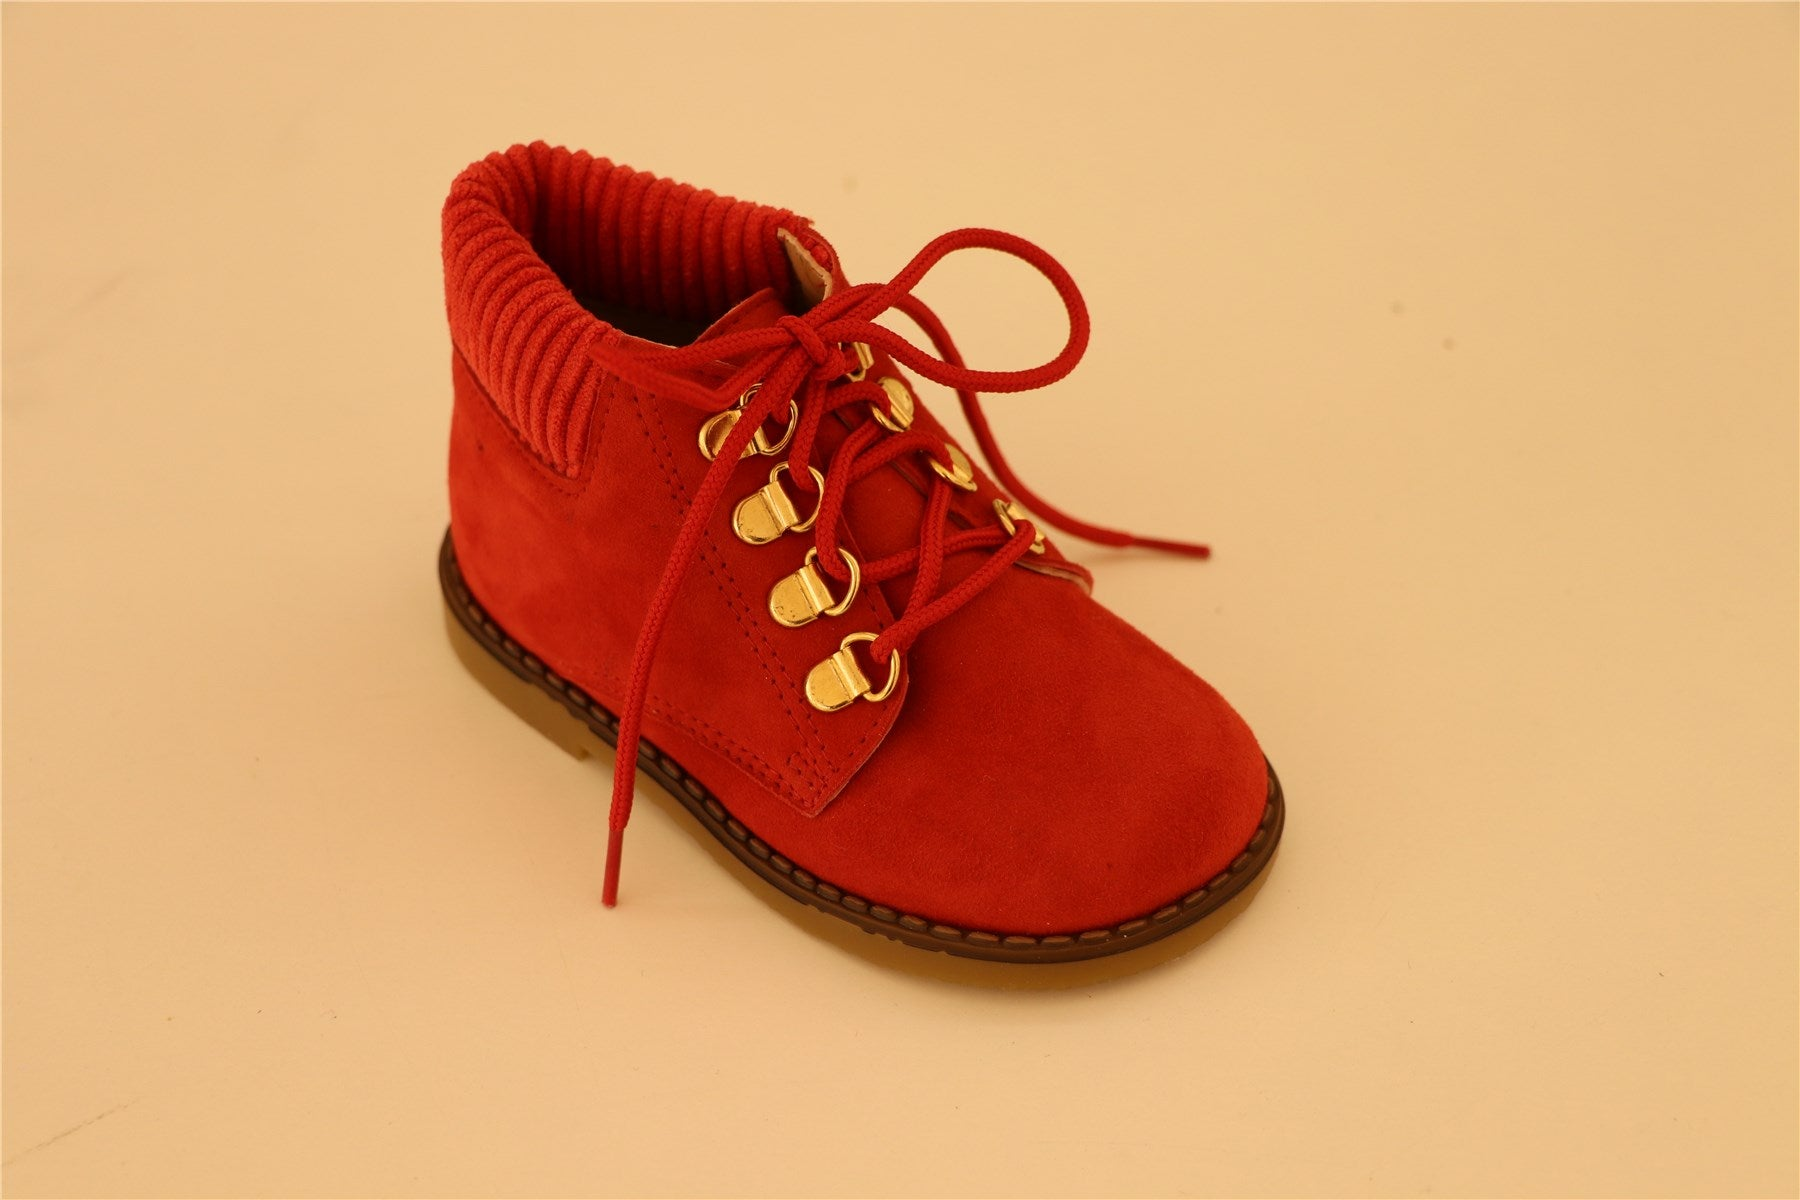 Red Suede With Gold Studs Booties